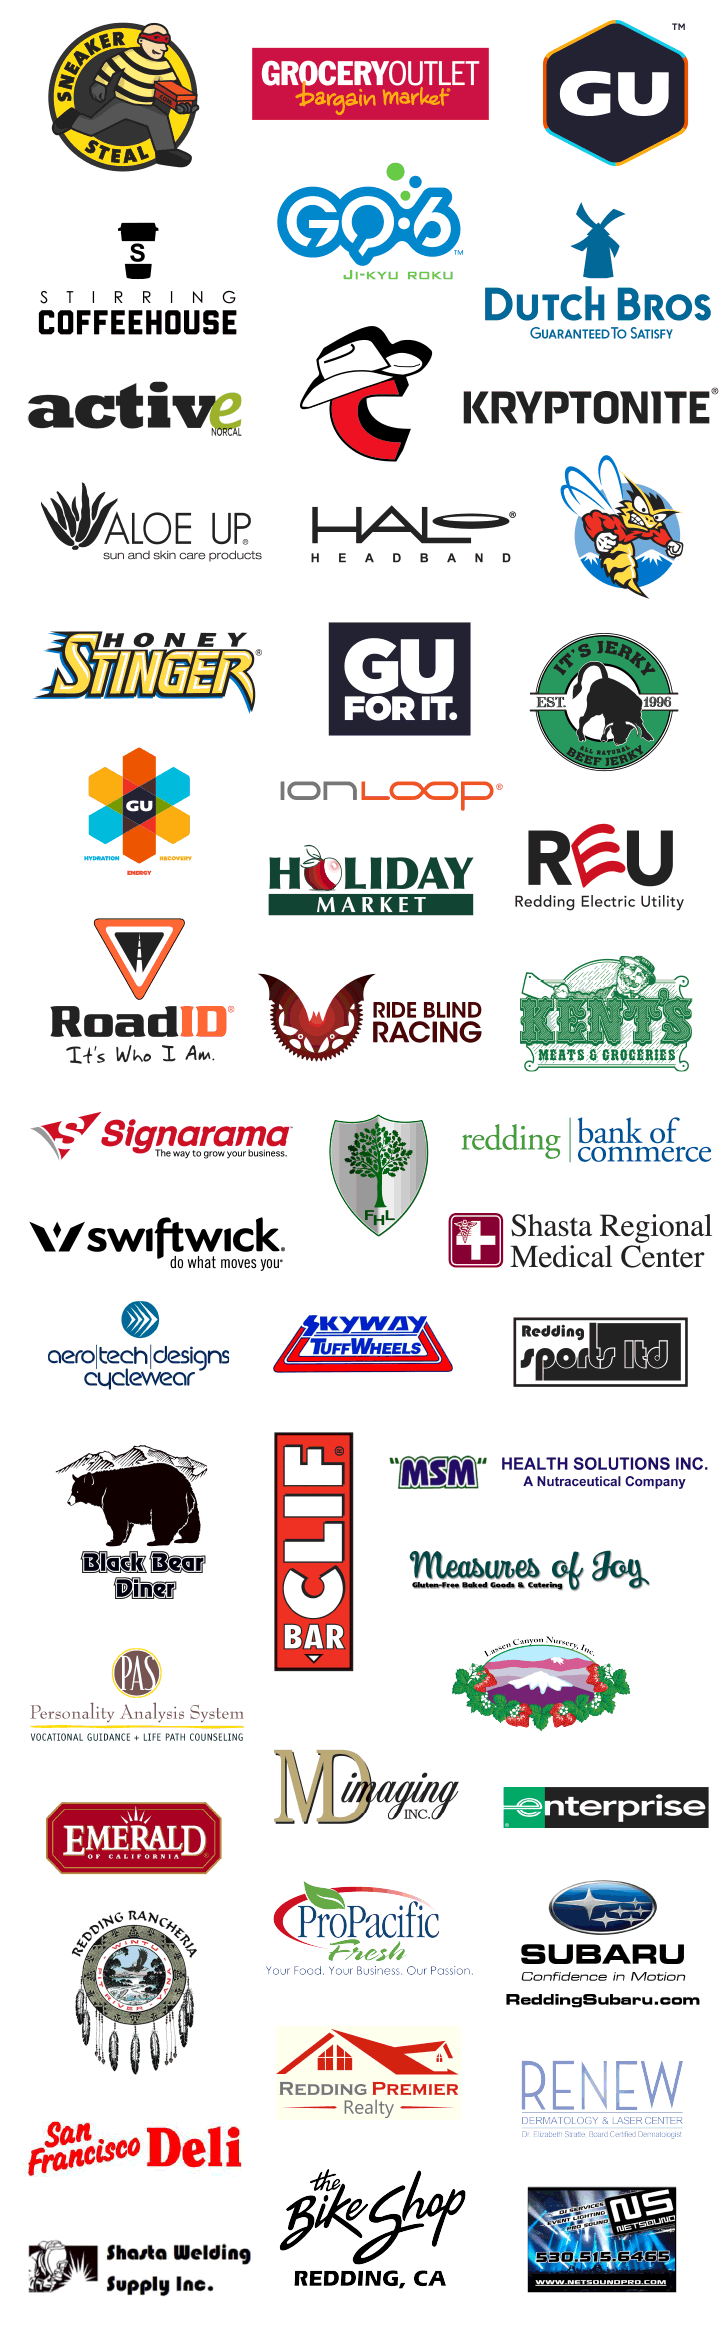 Red Hawk Ride 2016 Sponsors